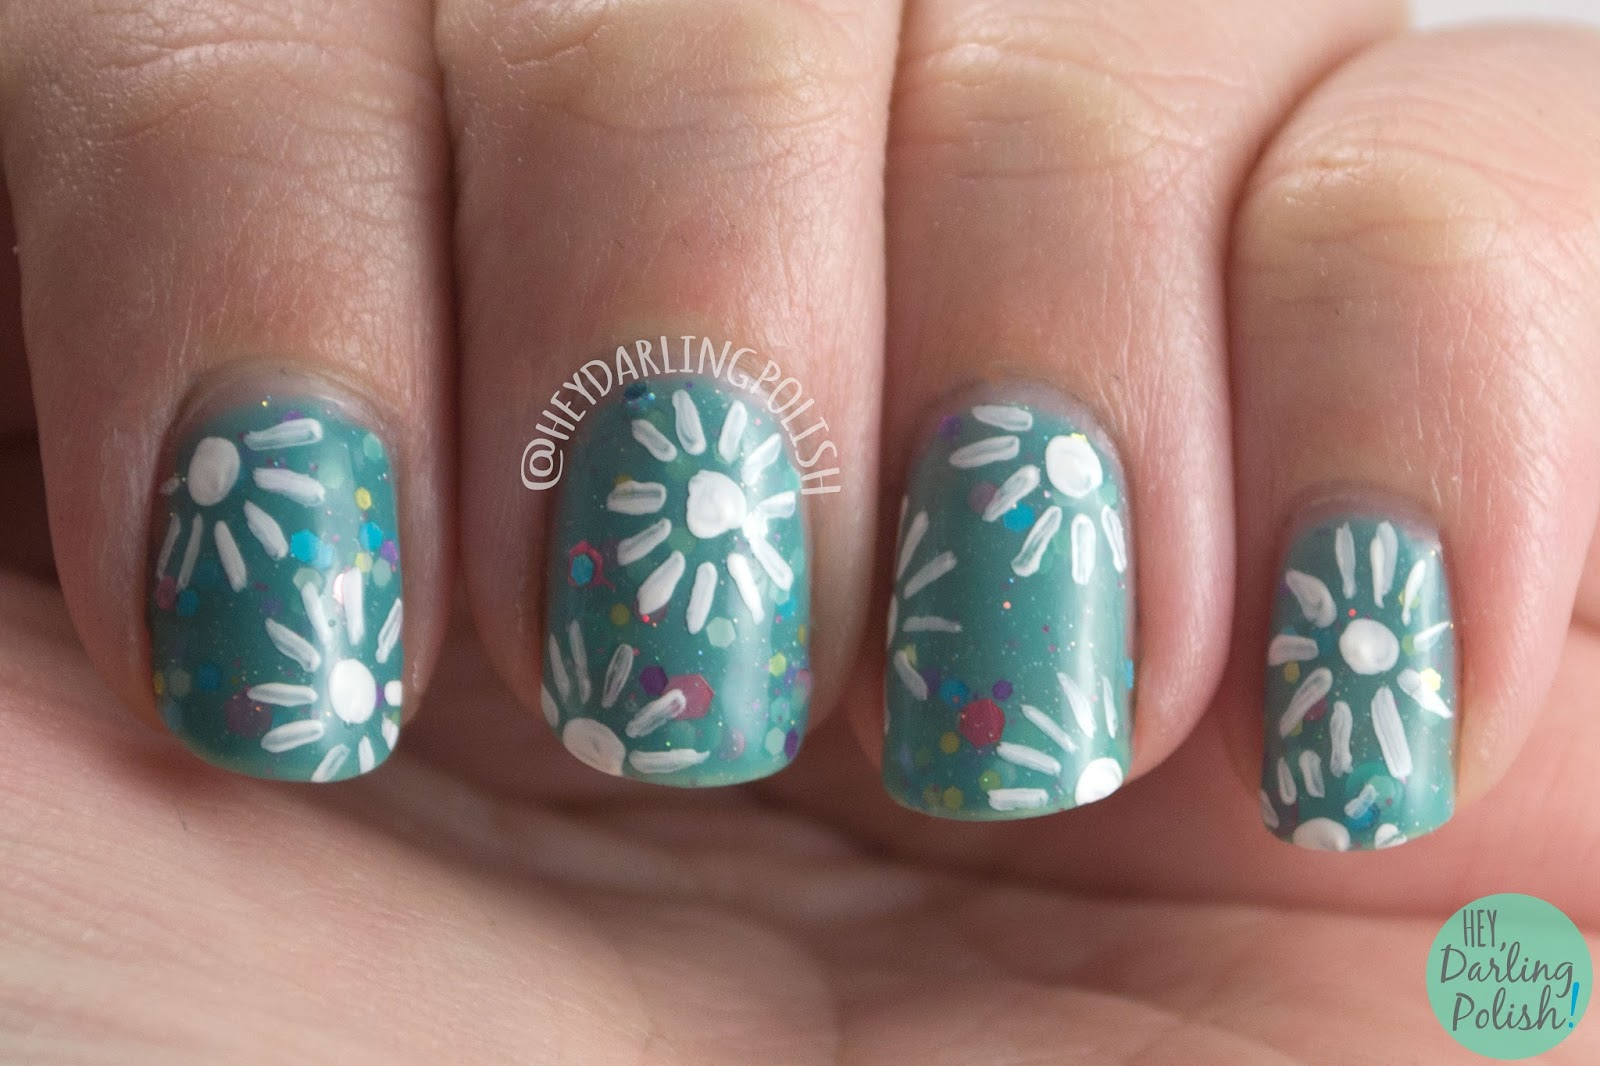 laugh myself lily, flowers, nail art, nails, nail polish, indie polish, kbshimmer, hey darling polish, glitter crelly, glitter,